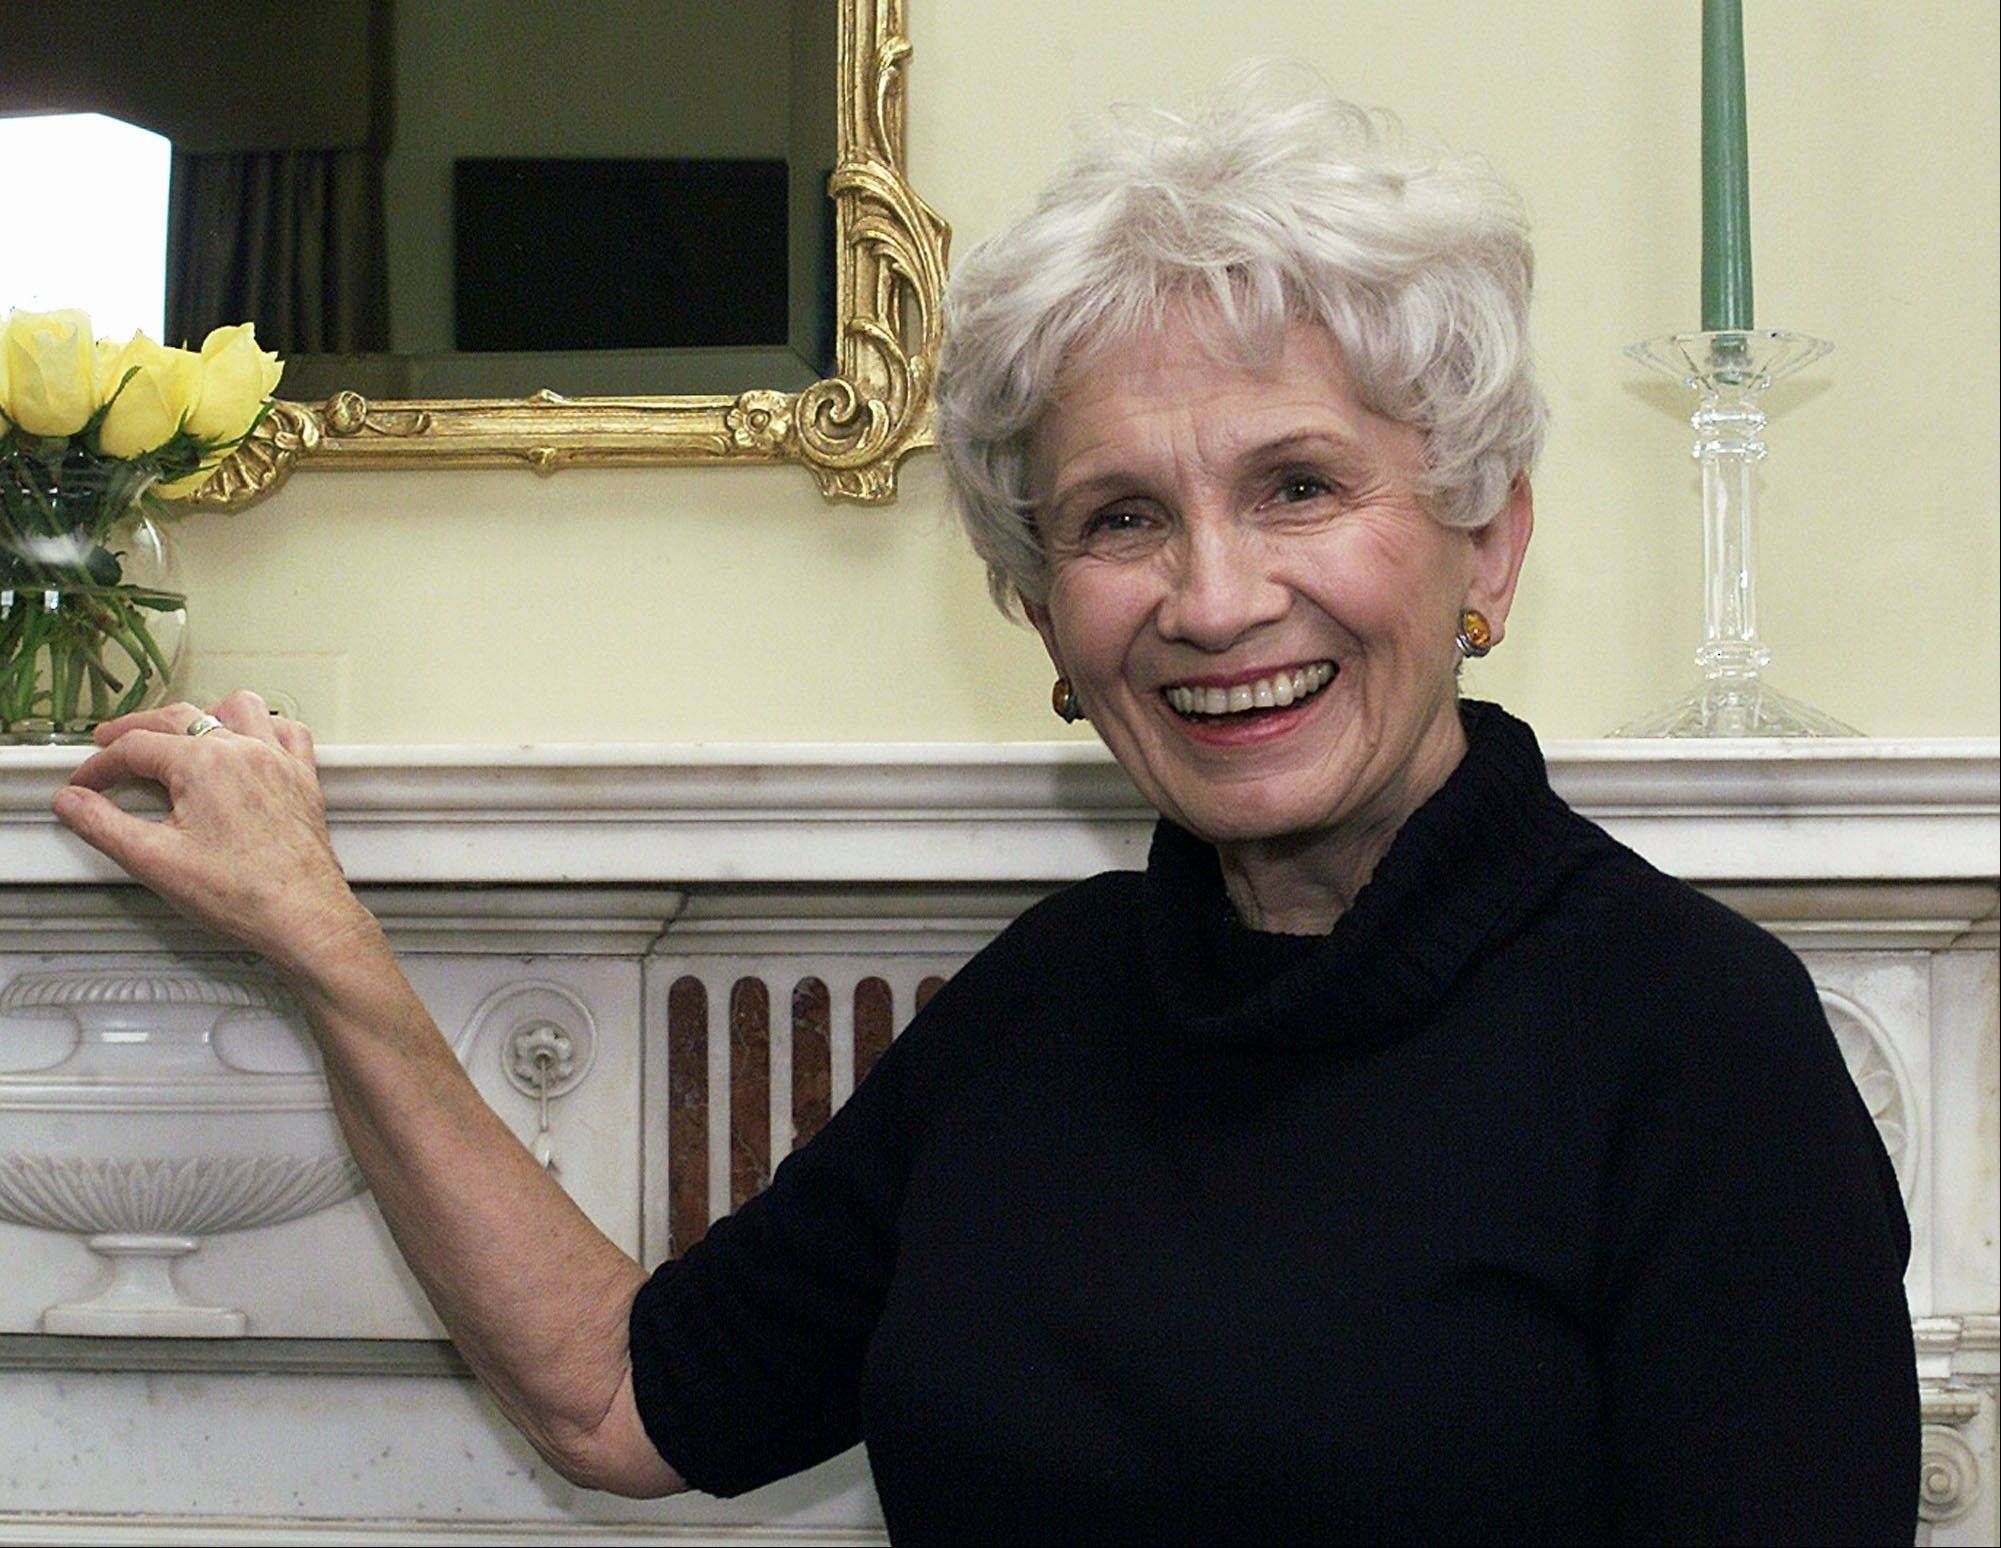 Short story master Alice Munro, who captured everyday lives and epiphanies in rural Canada with elegant and precise prose, won the Nobel Prize in literature on Thursday.